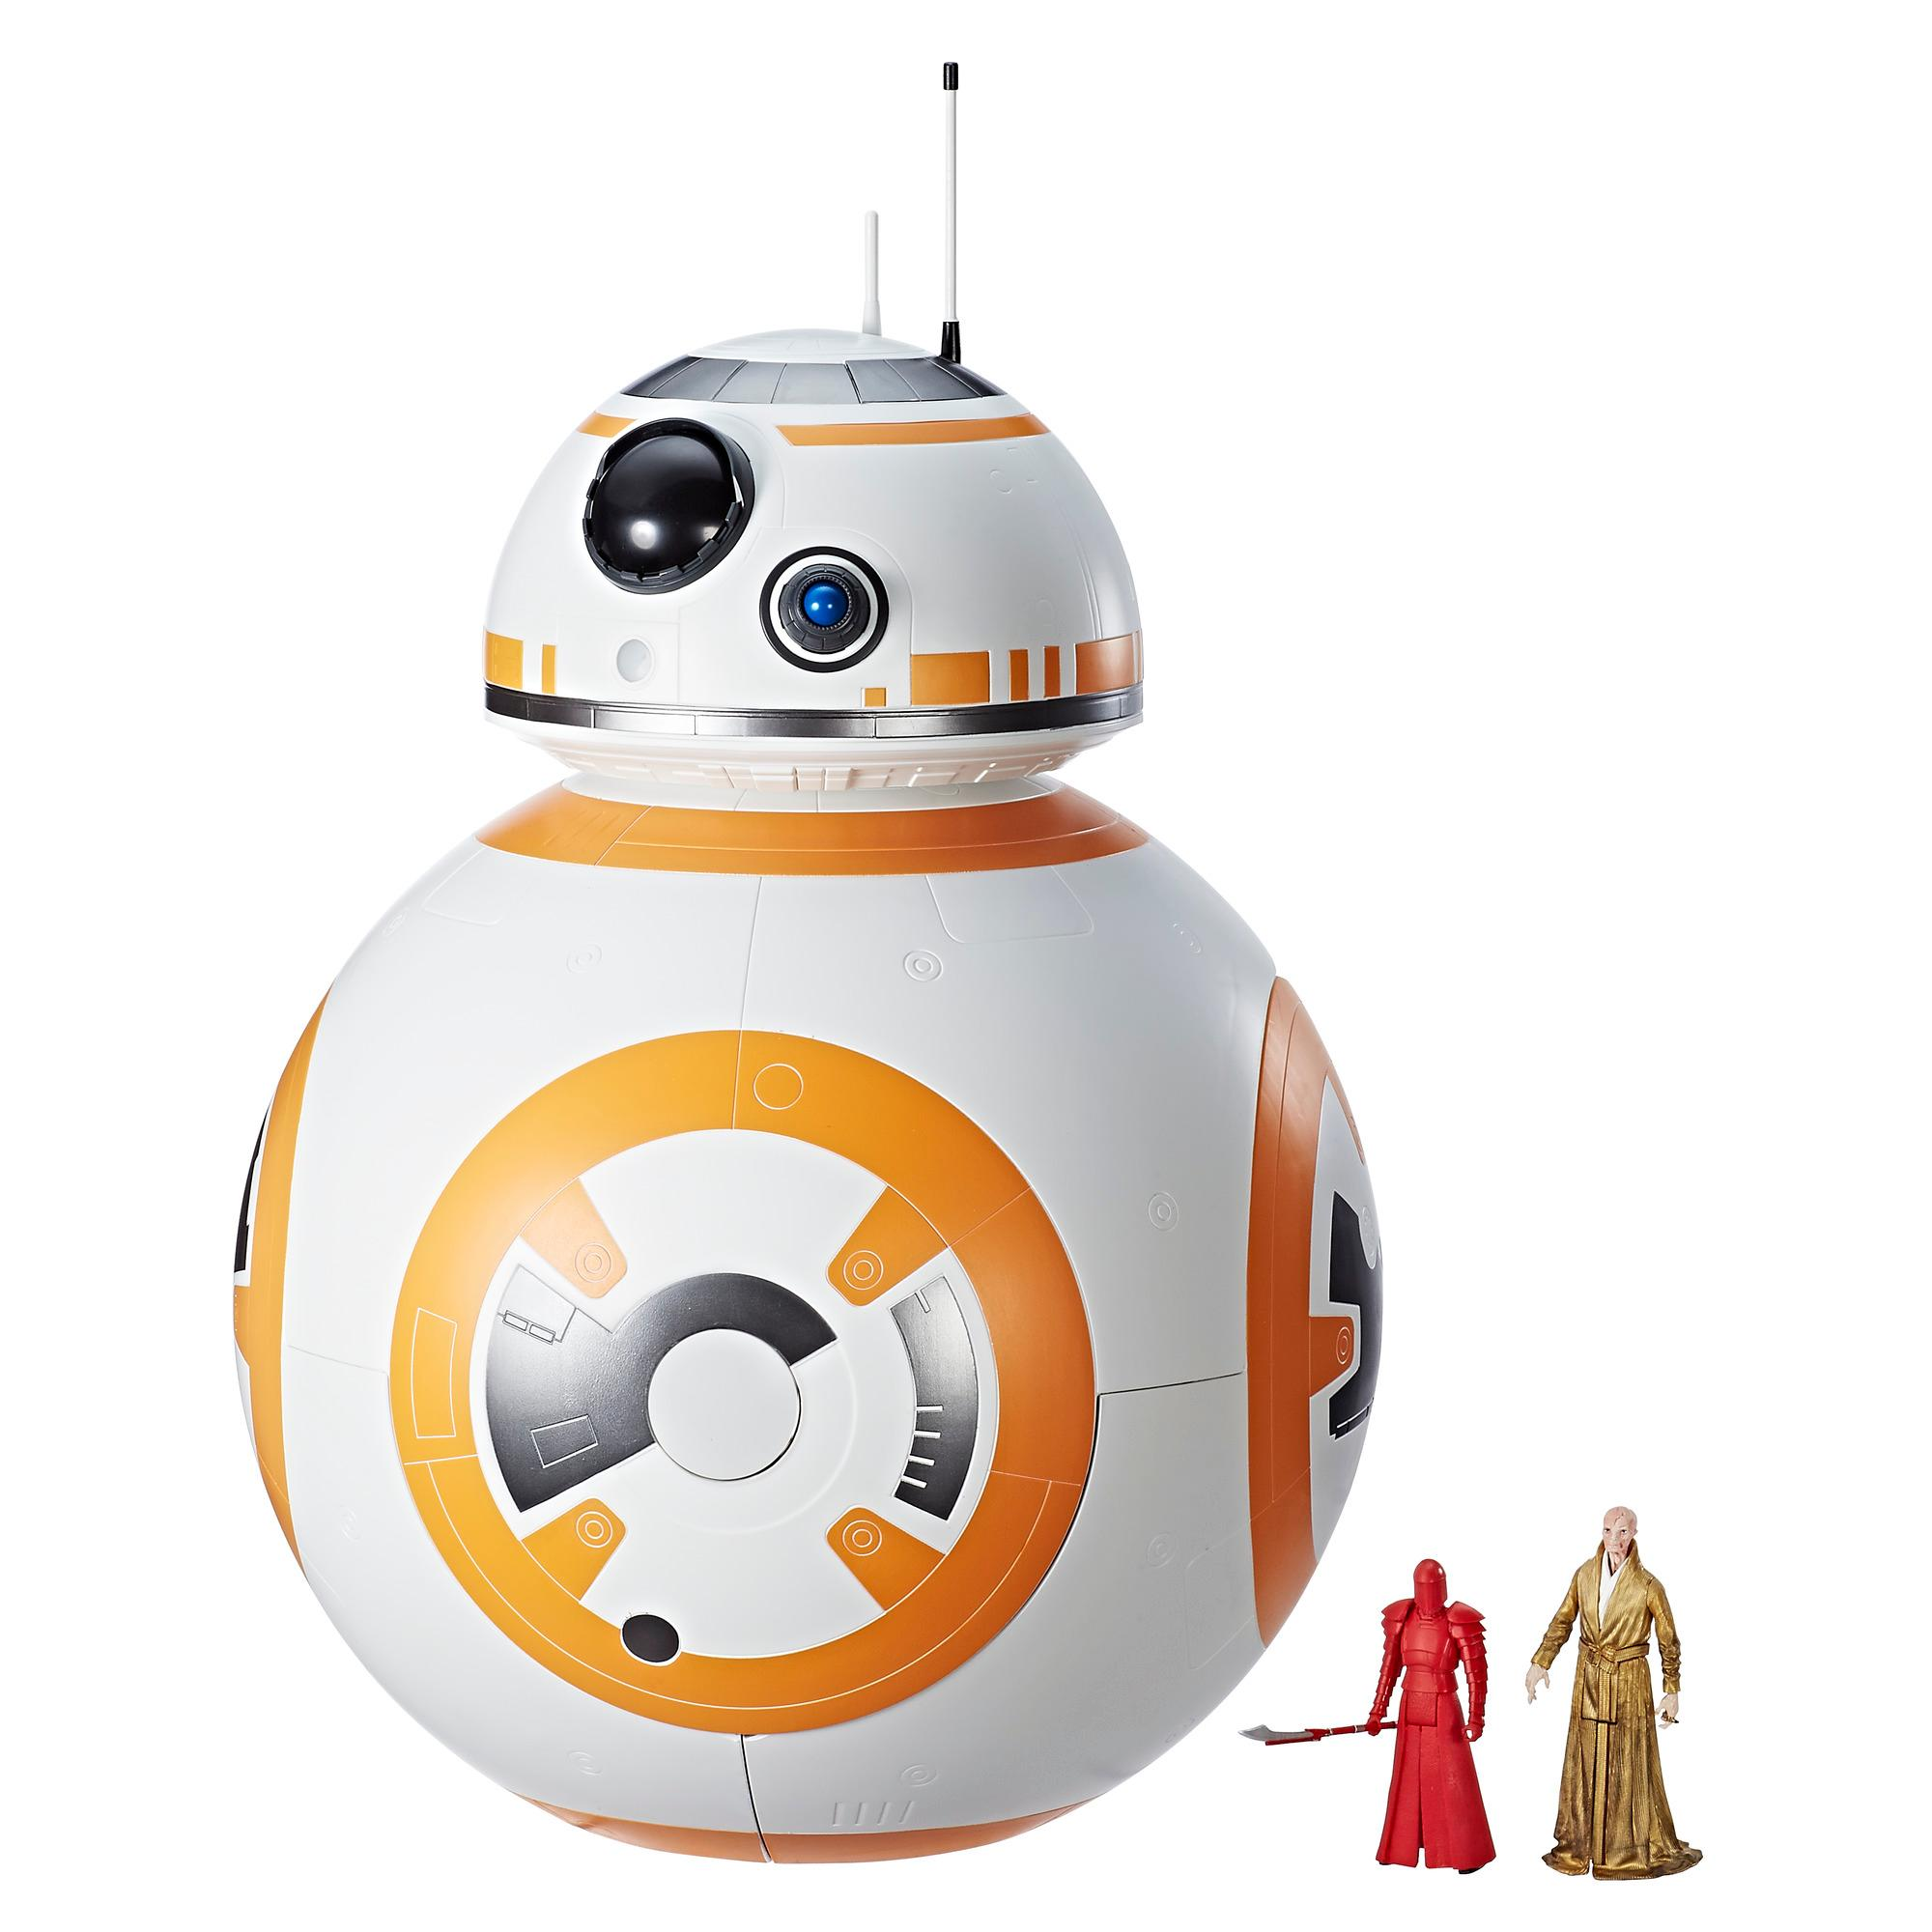 Star Wars - Mega Playset 2 em 1 do BB-8 Force Link sem dispositivo